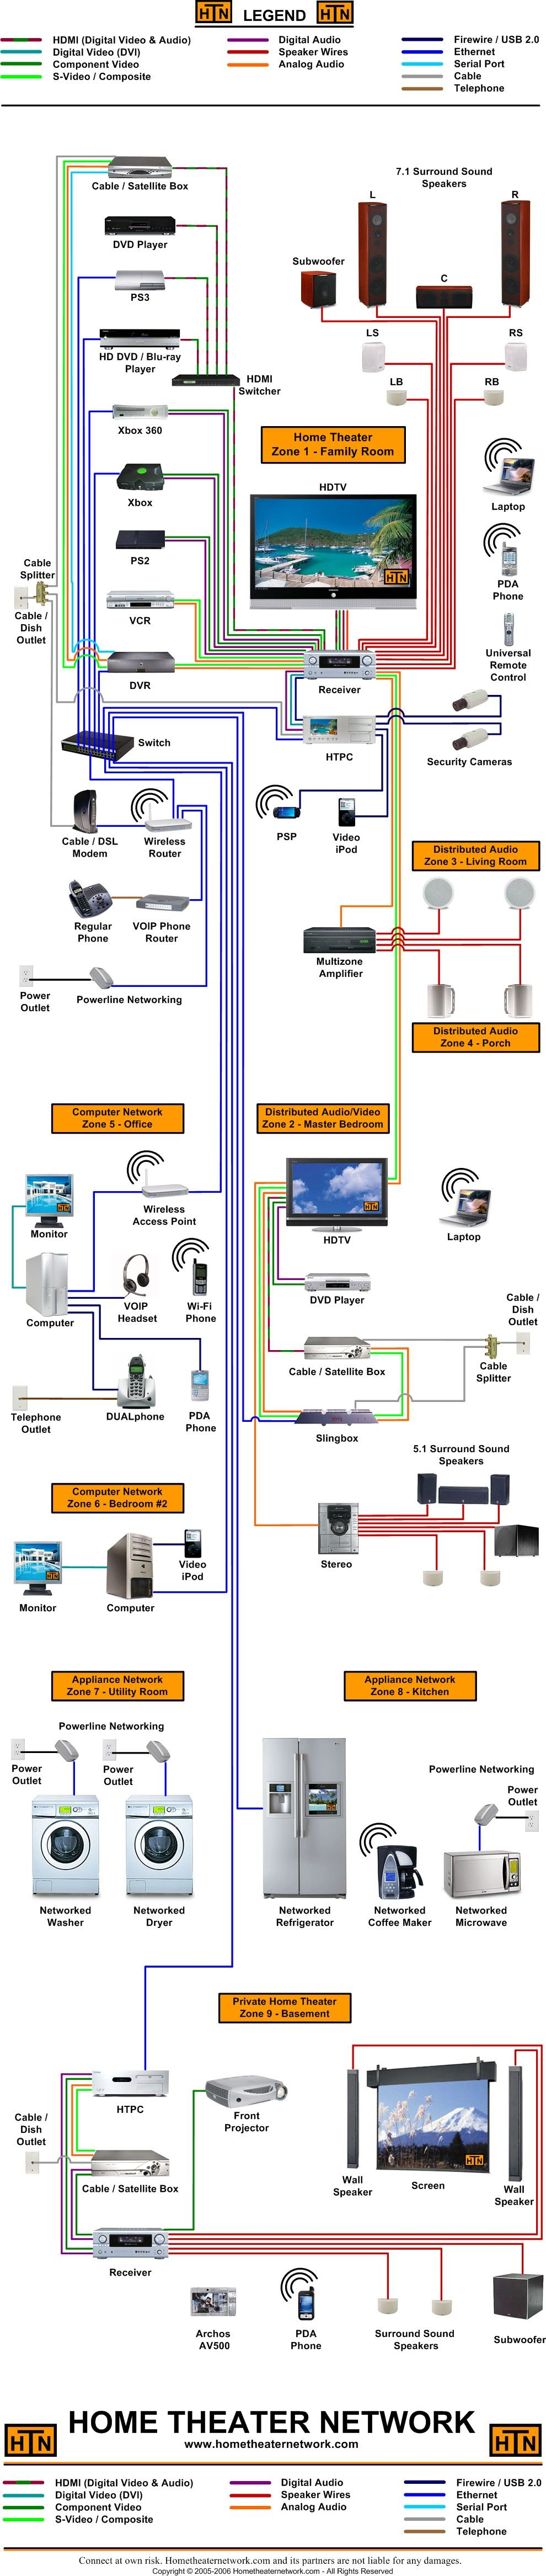 1f82225743b2dd8c34112b61e05b3406 best 25 home theater wiring ideas on pinterest home theater surround sound system wiring diagram at crackthecode.co